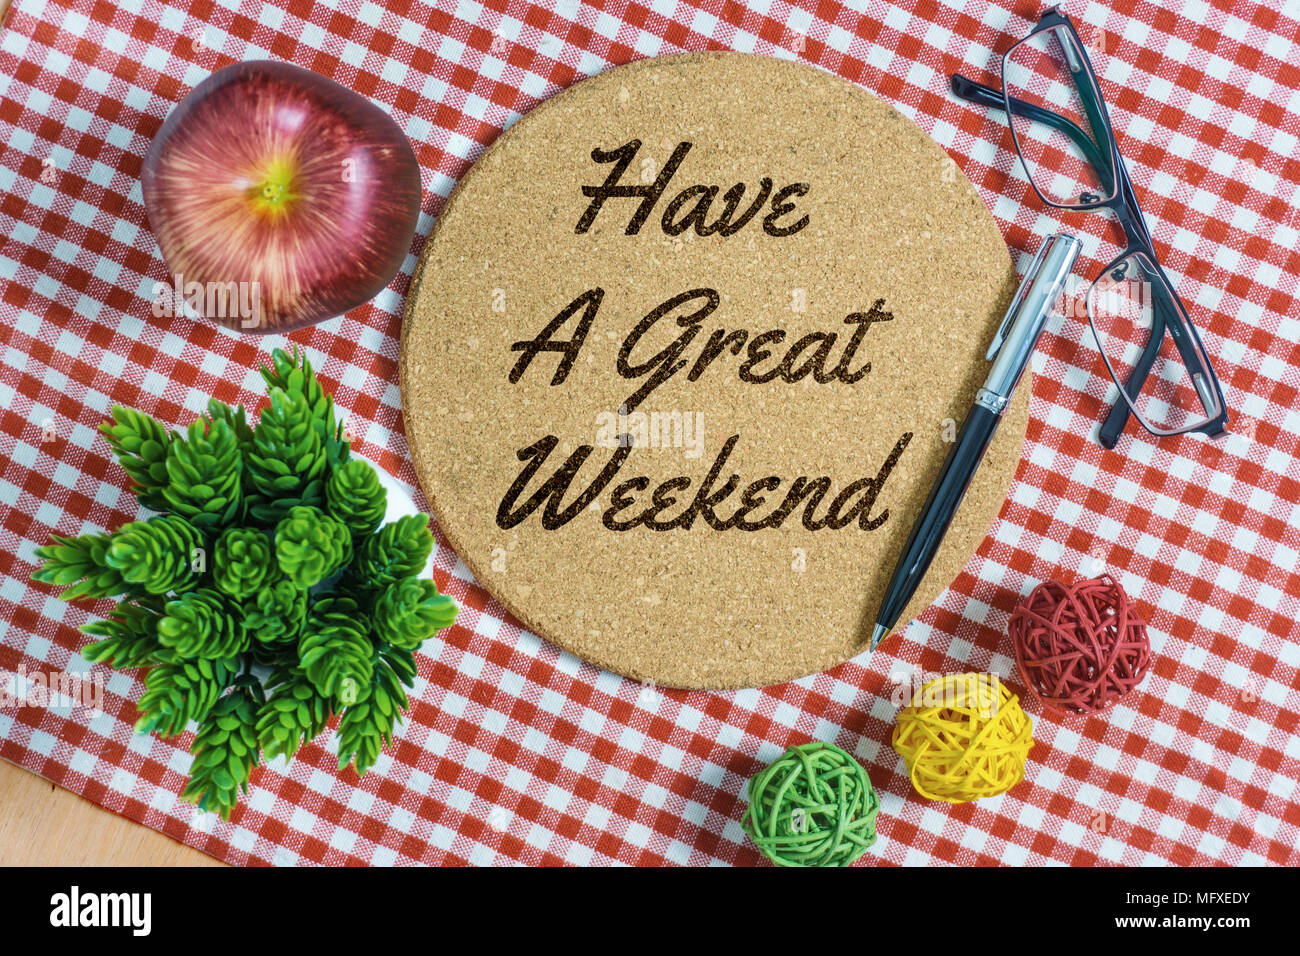 Have A Great Weekend. Cork bulletin board on red stripes napkin with pen, apple, spectacle and potted plant. - Stock Image